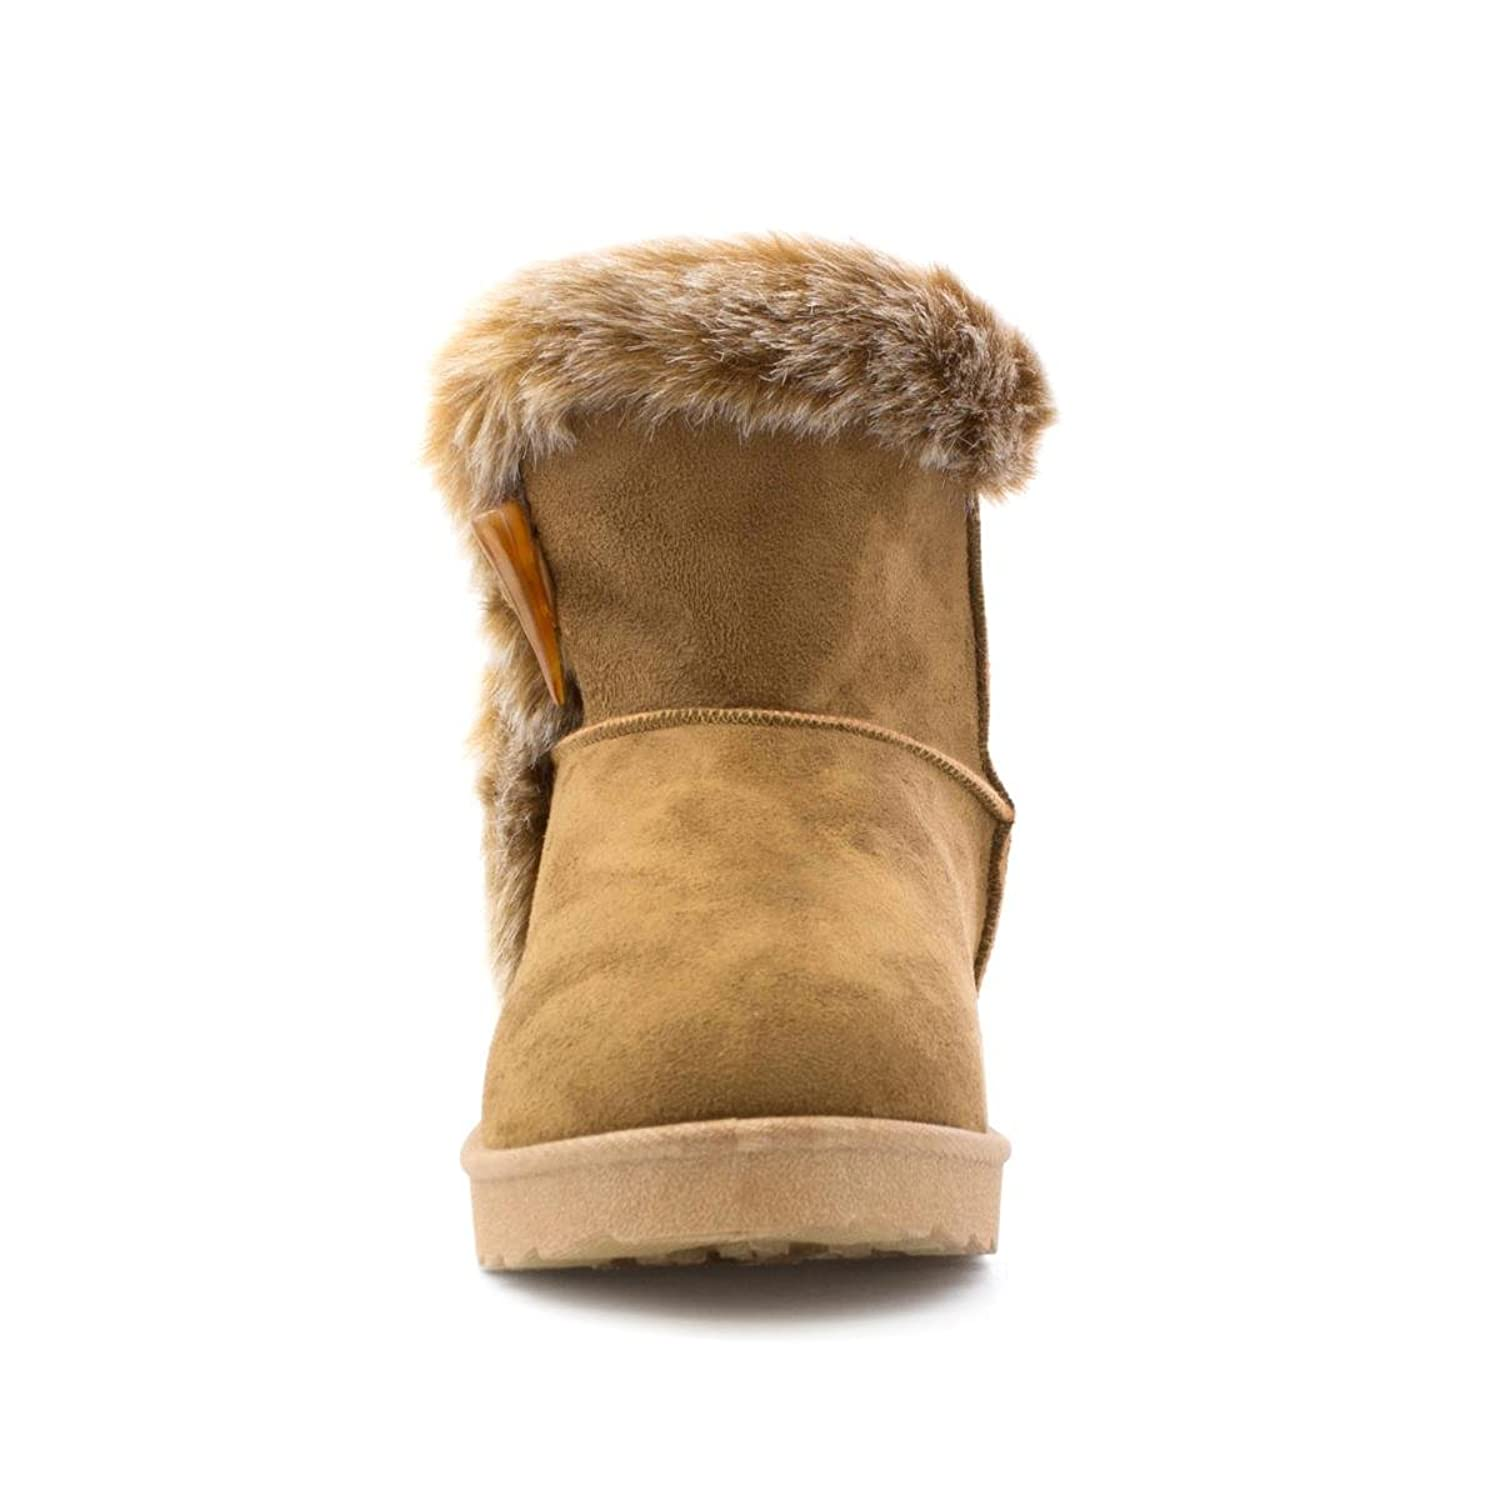 Lilley Womens Chestnut Faux Suede Ankle Boot - Size 9 UK - Beige:  Amazon.co.uk: Shoes & Bags